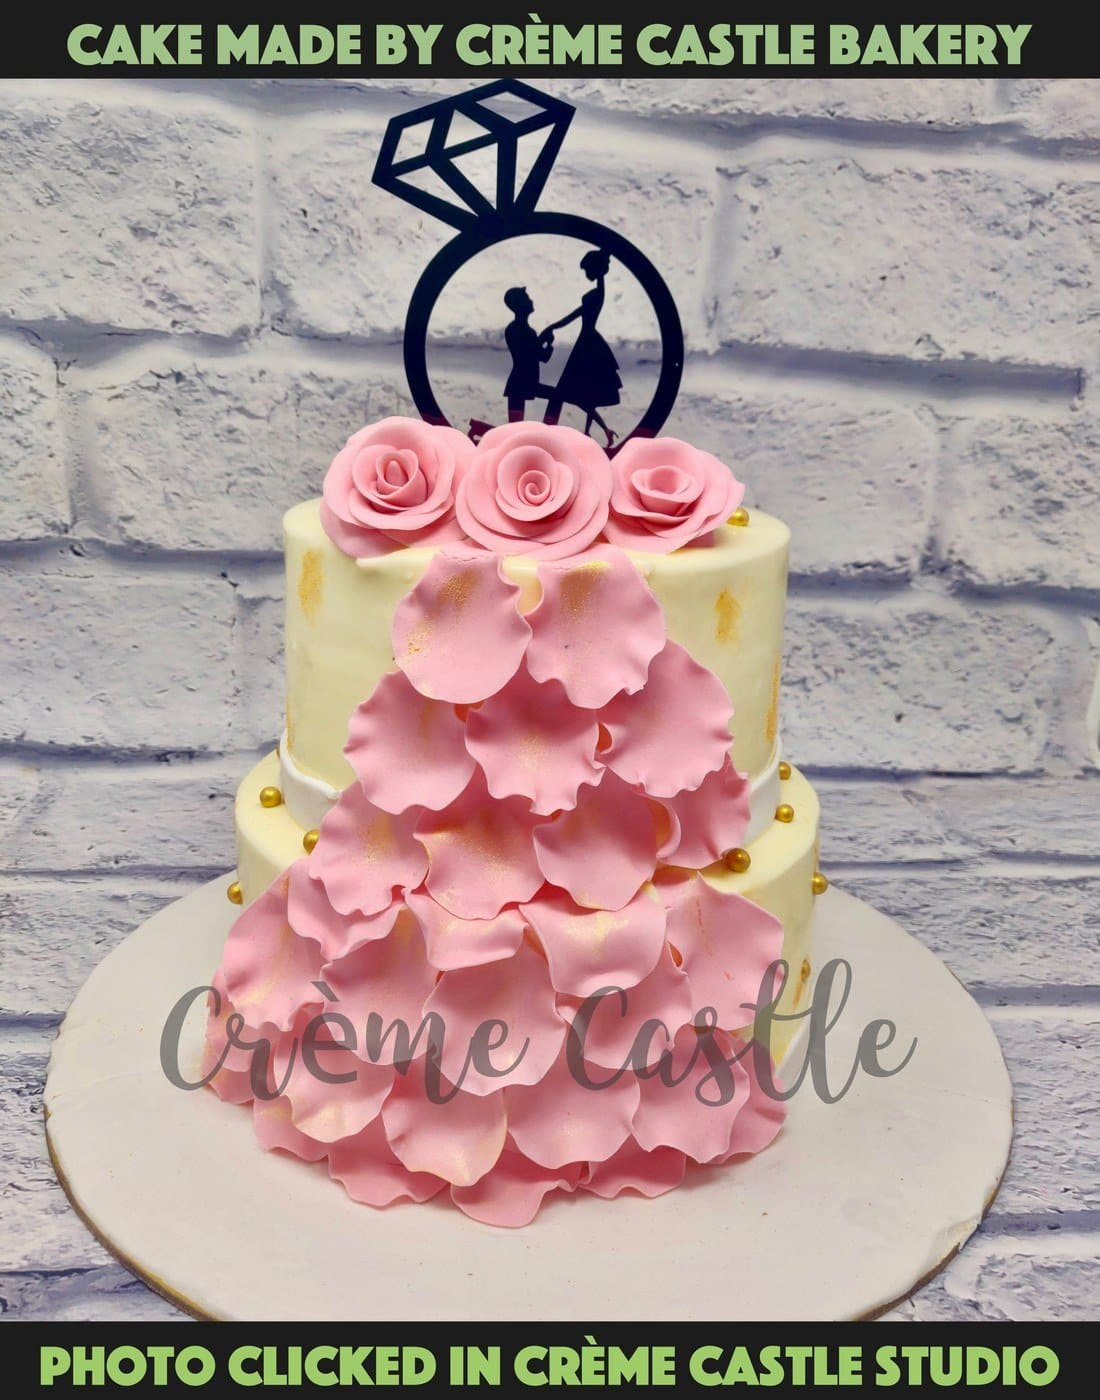 A tier cake in the form of a dress with roses on top and a topper of proposal. The flower petals flowing all over the cake giving it a dress like feel